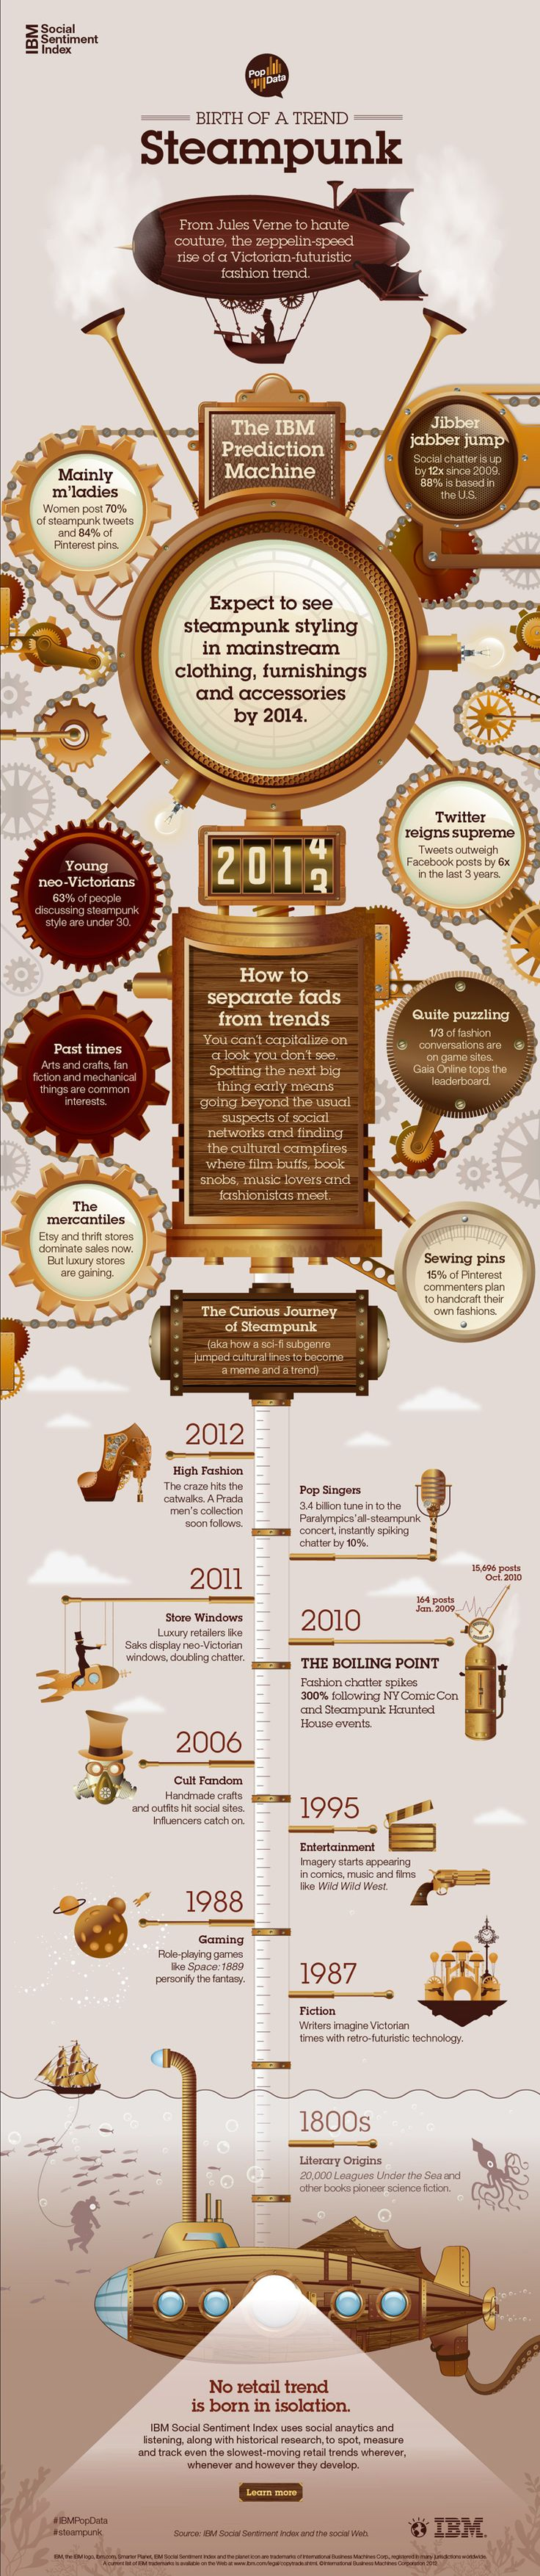 Steampunk - IBM supercomputer says its the next big thing! [INFOGRAPHIC]